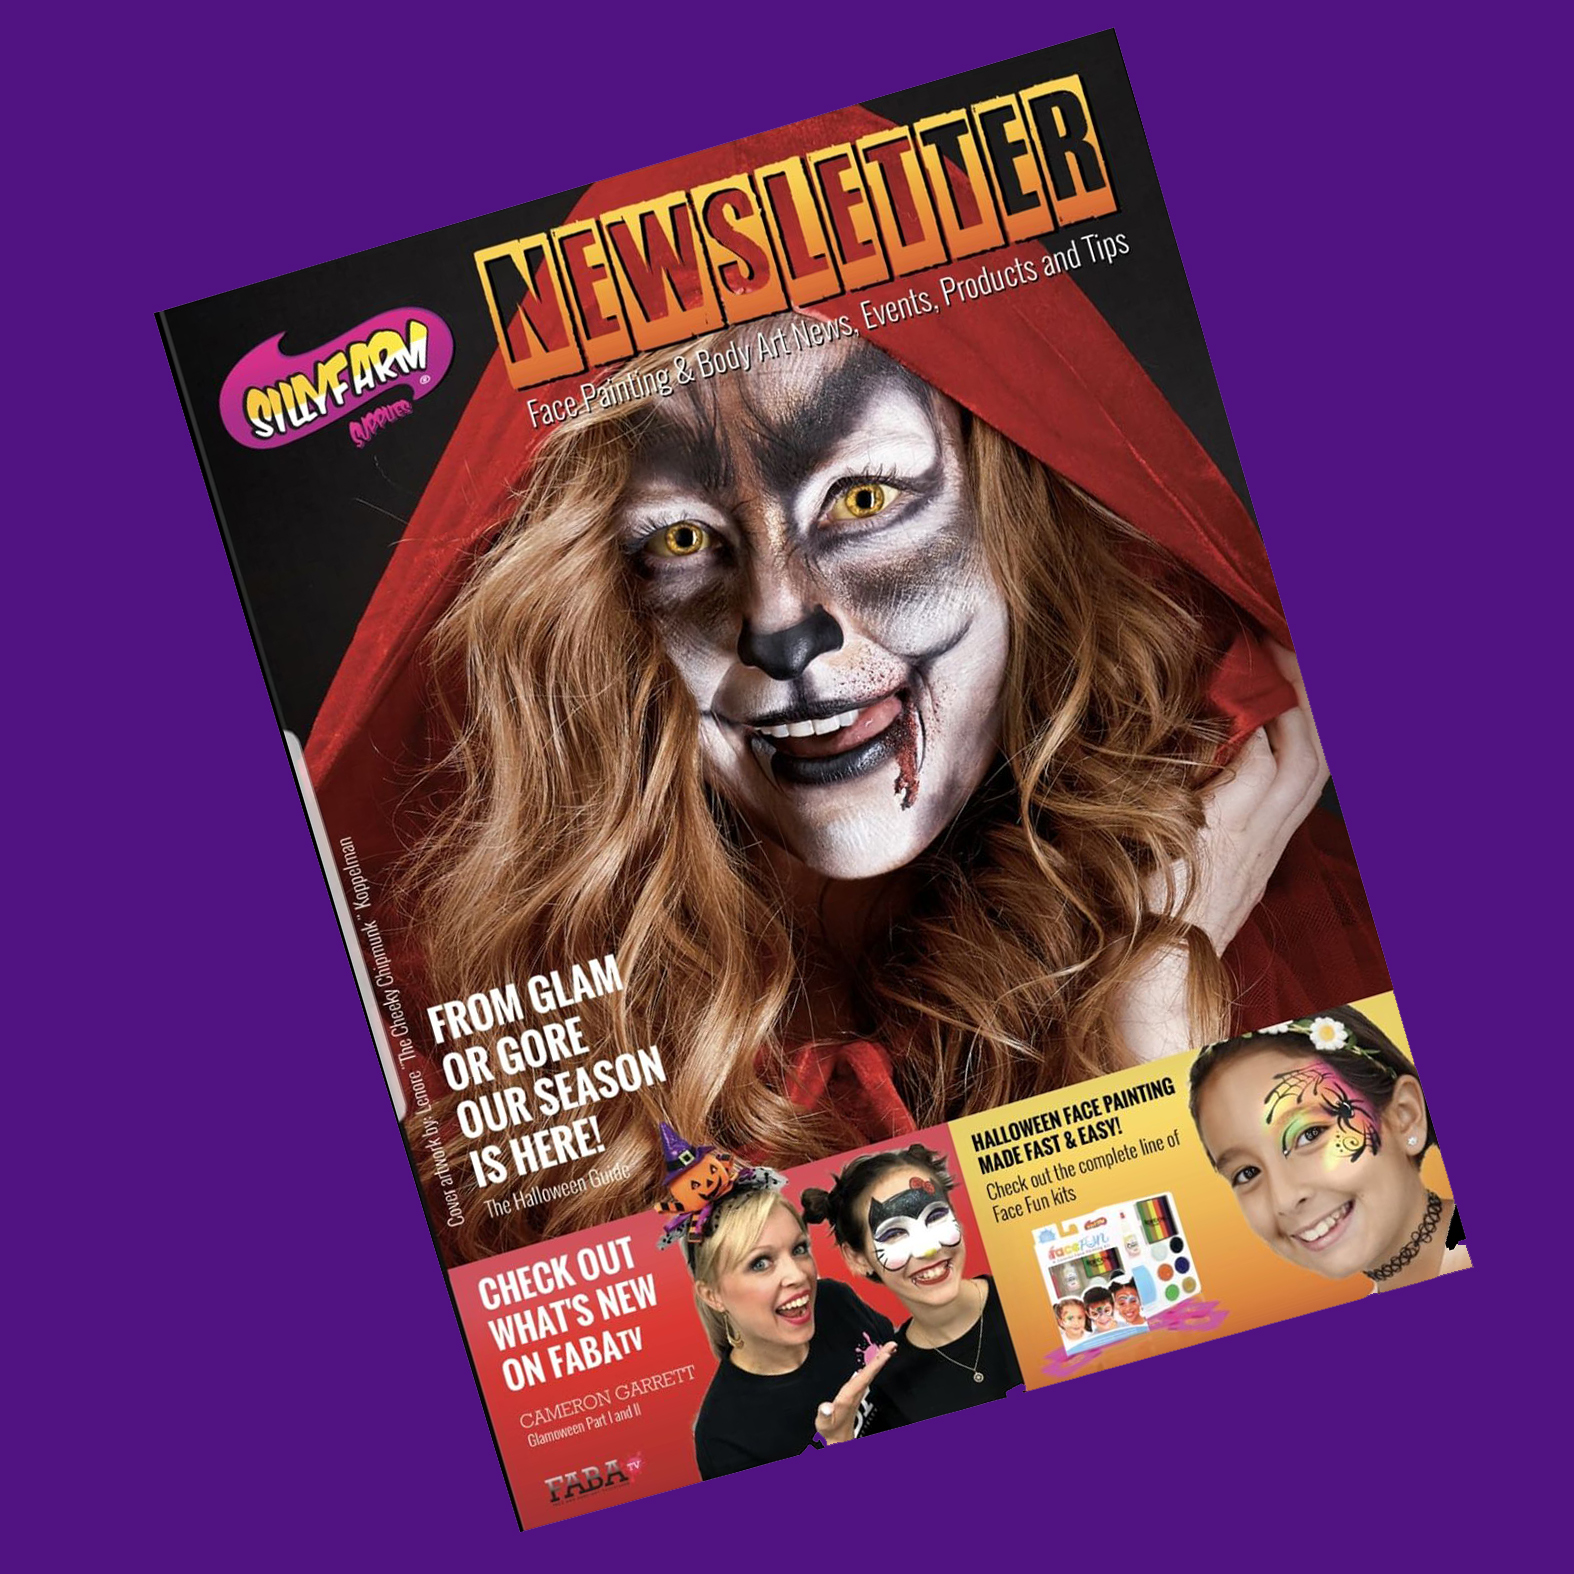 lenore-koppelman-the-cheeky-chipmunk-little-red-riding-hood-wolf-cassie-mike-yamin-photography-newsletter-sillyfarm-face-painting-body-painting-nyc-magazine-press-publication-diagonal-square-purple.jpg